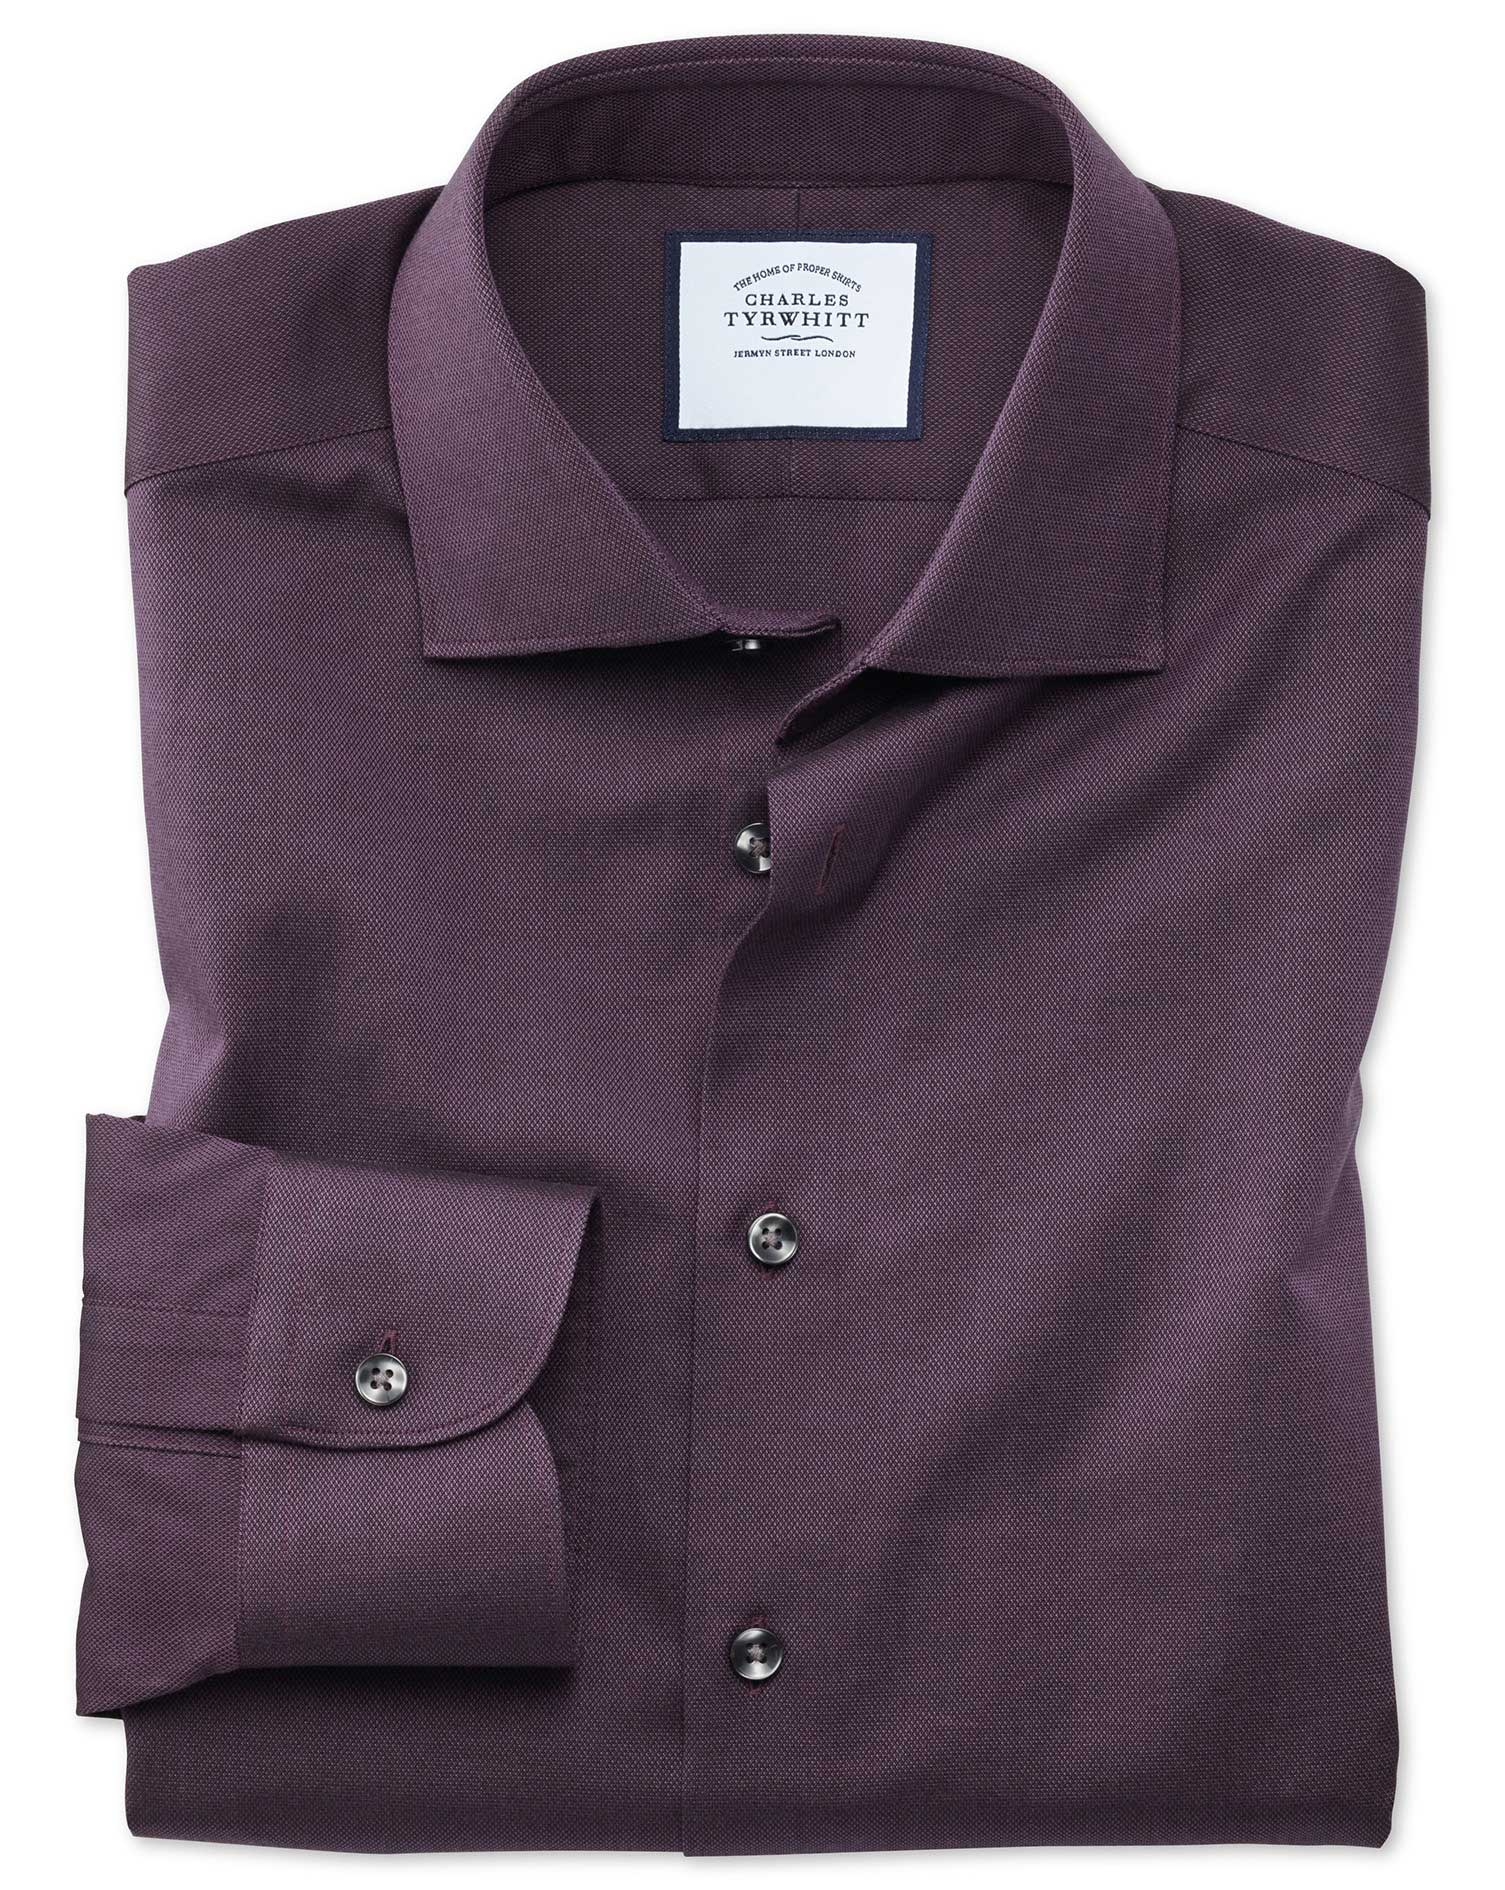 Slim Fit Business Casual Berry Royal Oxford Cotton Formal Shirt Single Cuff Size 17/33 by Charles Ty